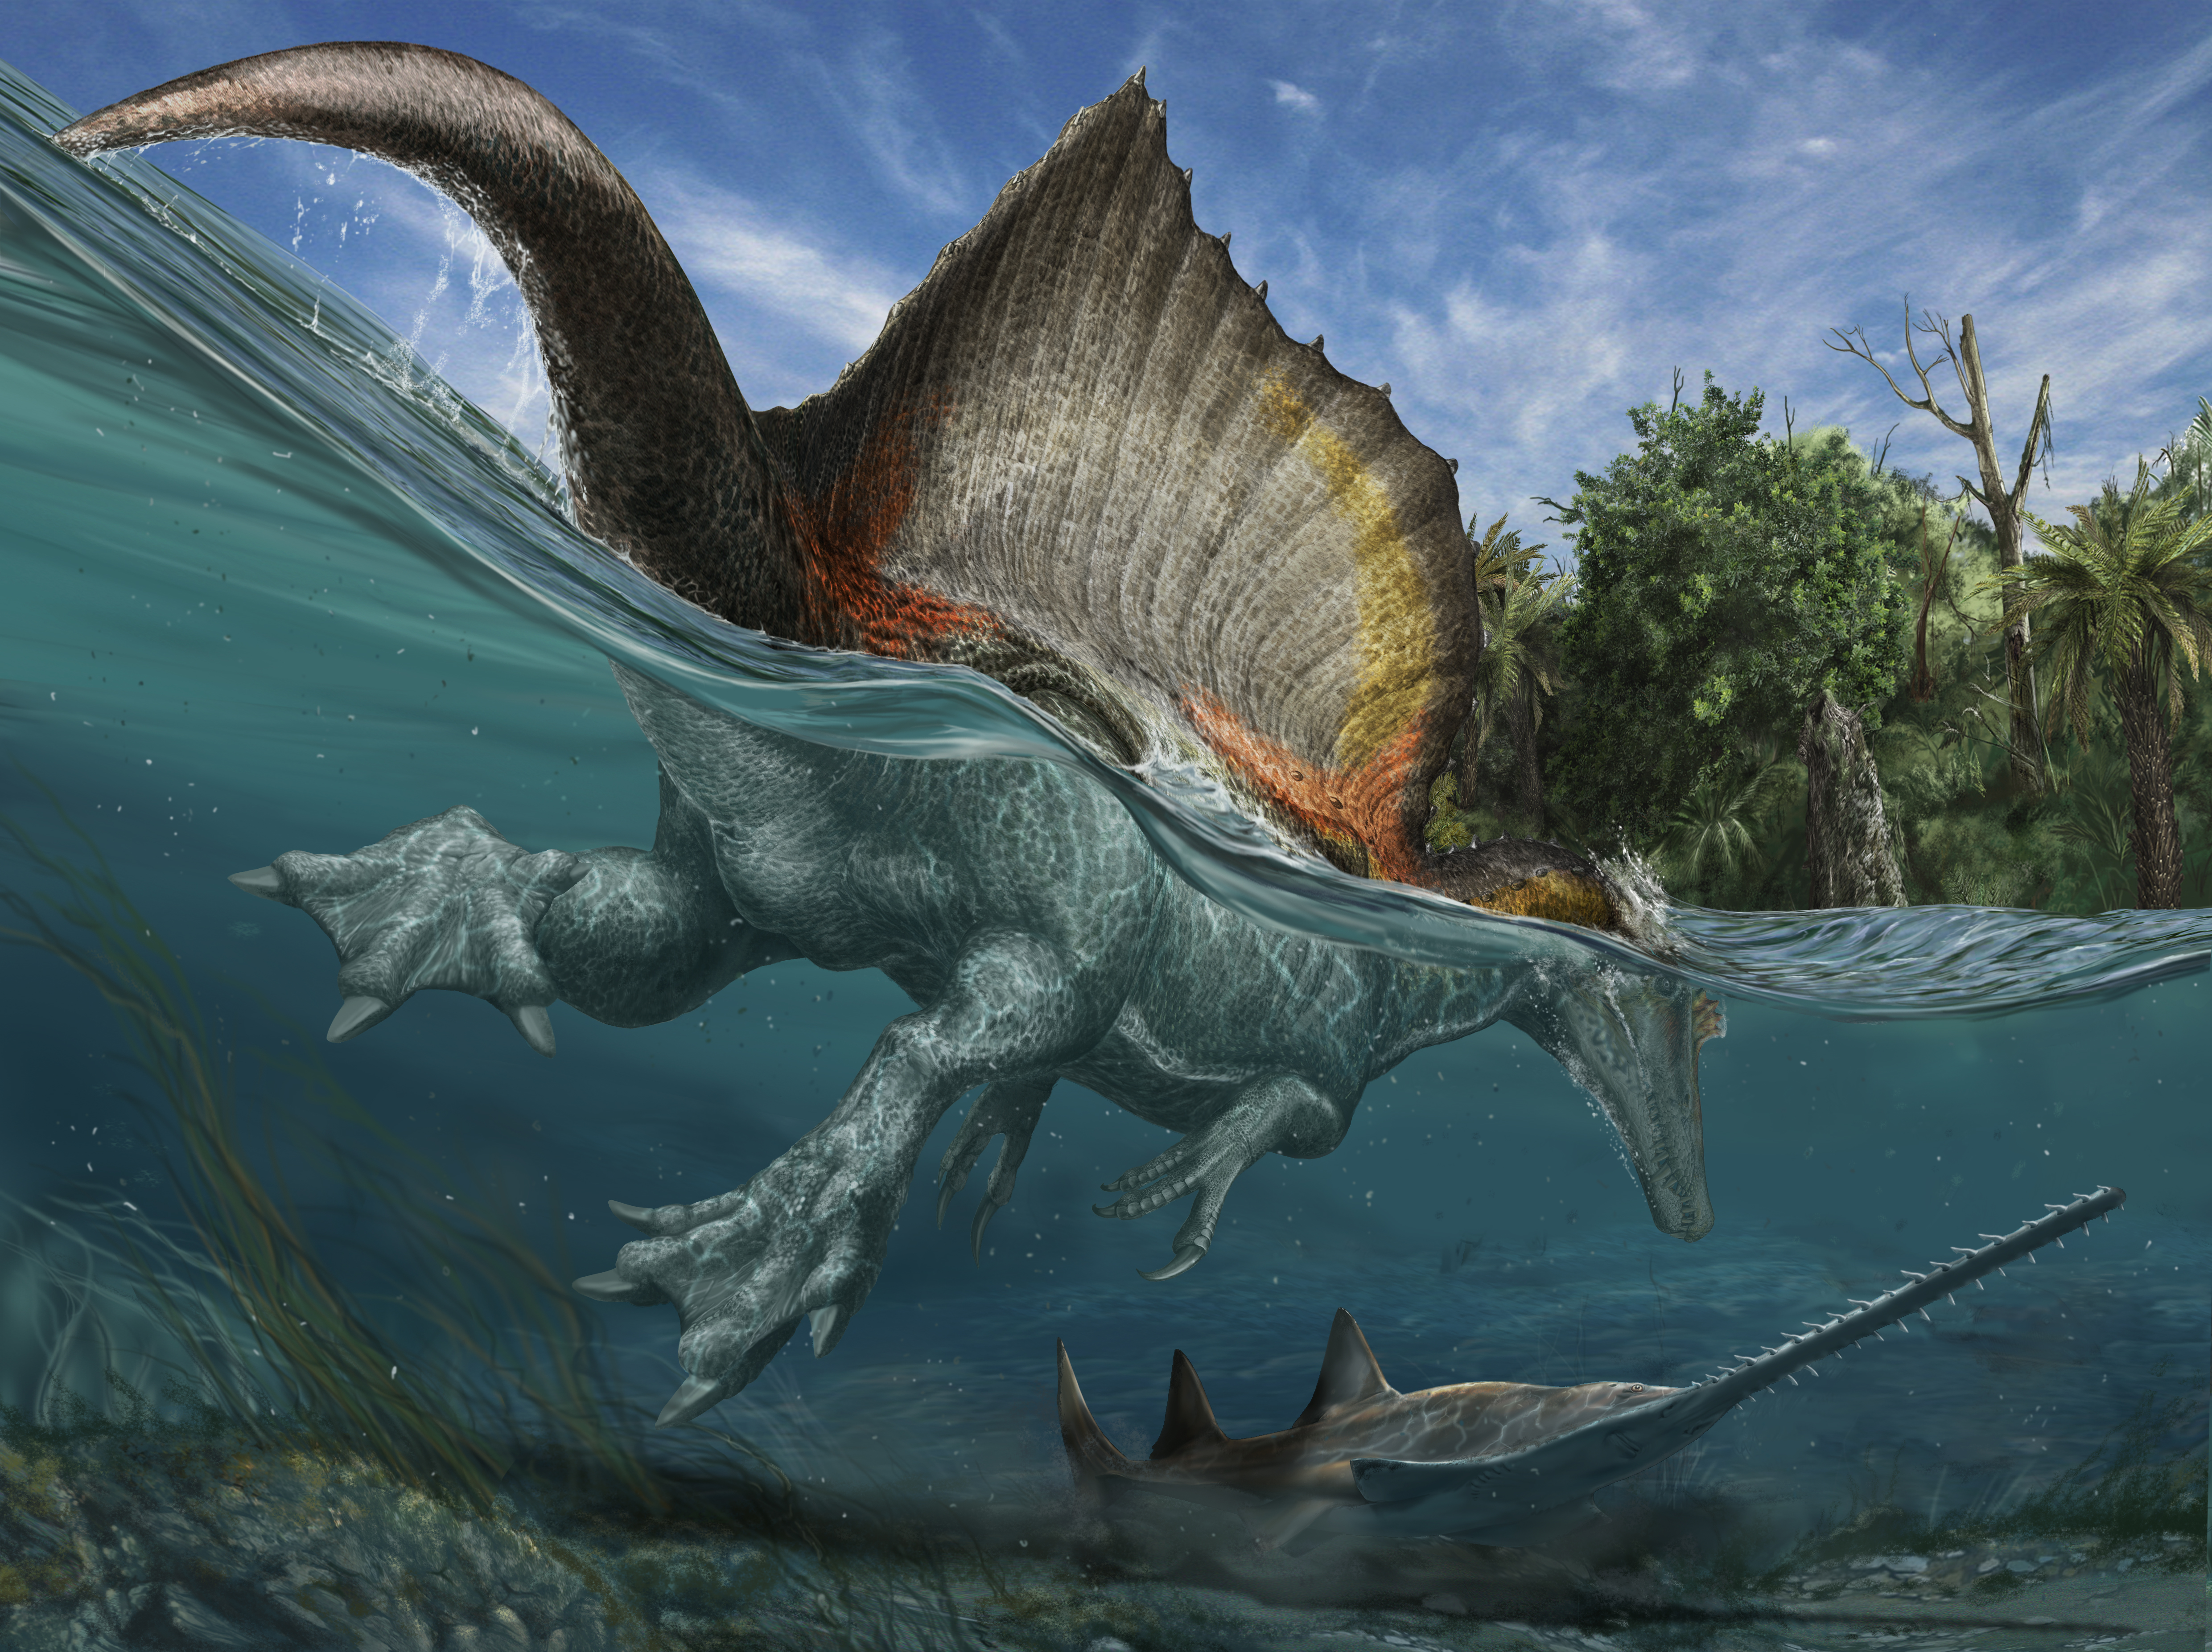 An artist's rendering, based on Ibrahim's research, of Spinosaurus and the river ecosystem that existed 100 million years ago, in what is now the Sahara desert. Image: Davide Bonadonna Maganuco